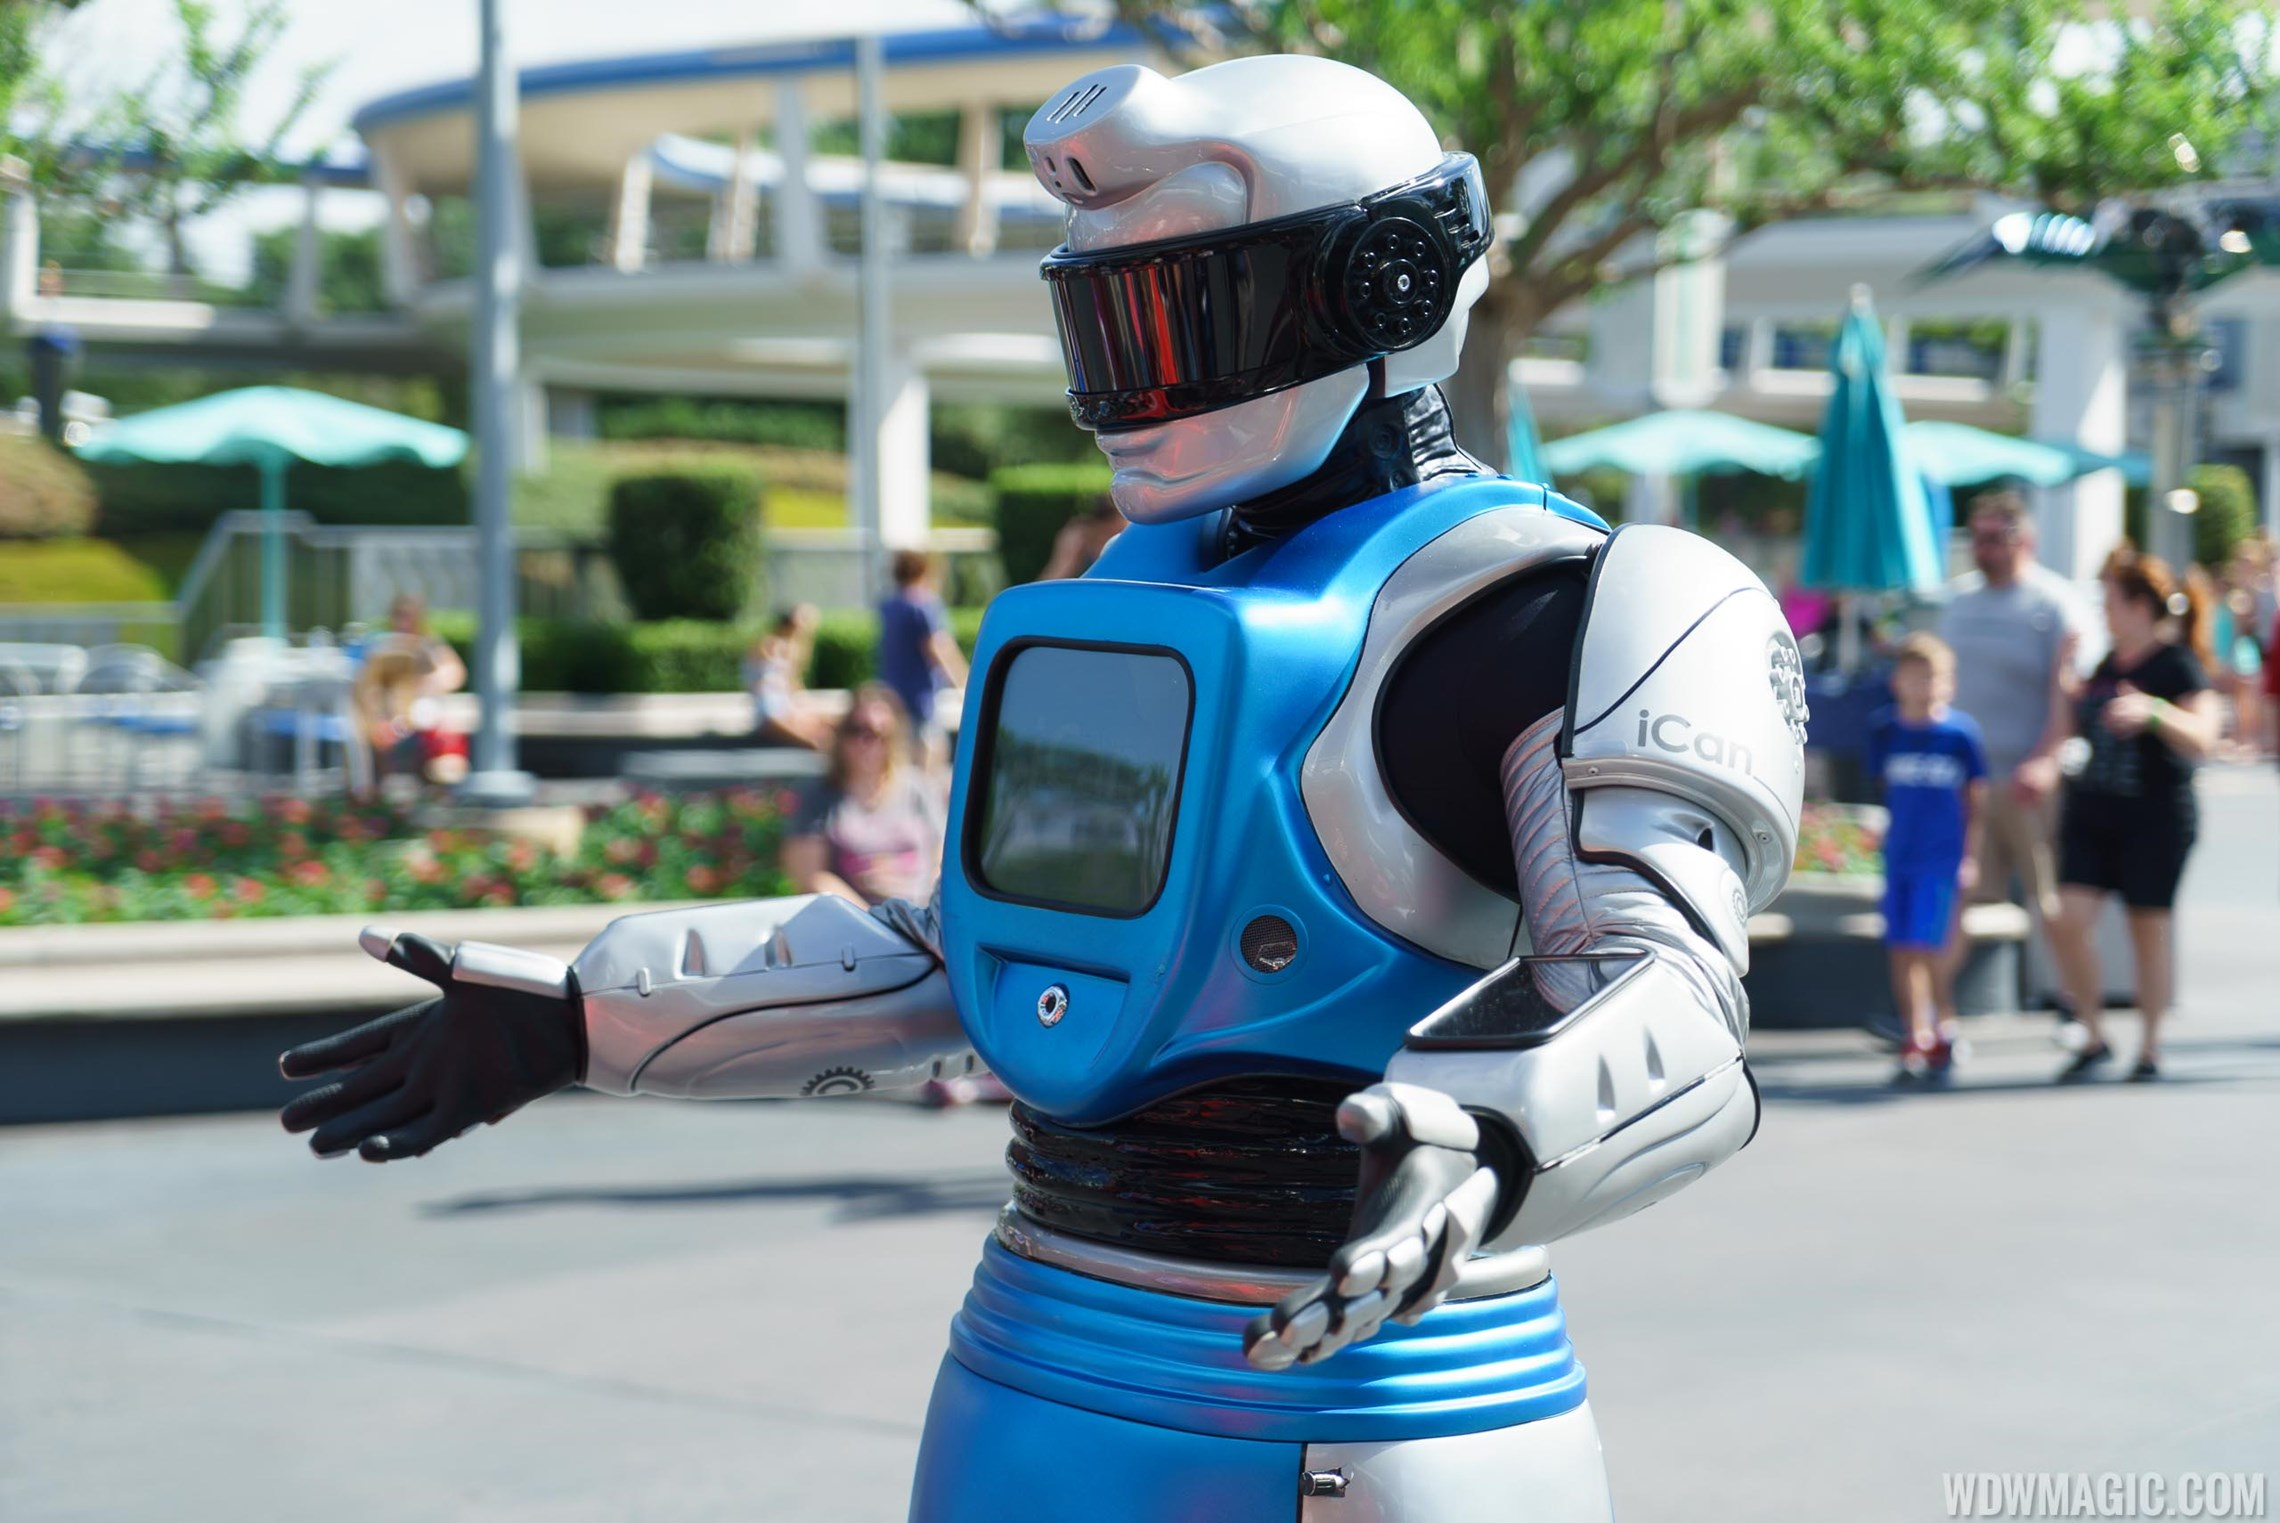 VIDEO - New interactive iCan Robot experience in the Magic Kingdom's Tomorrowland